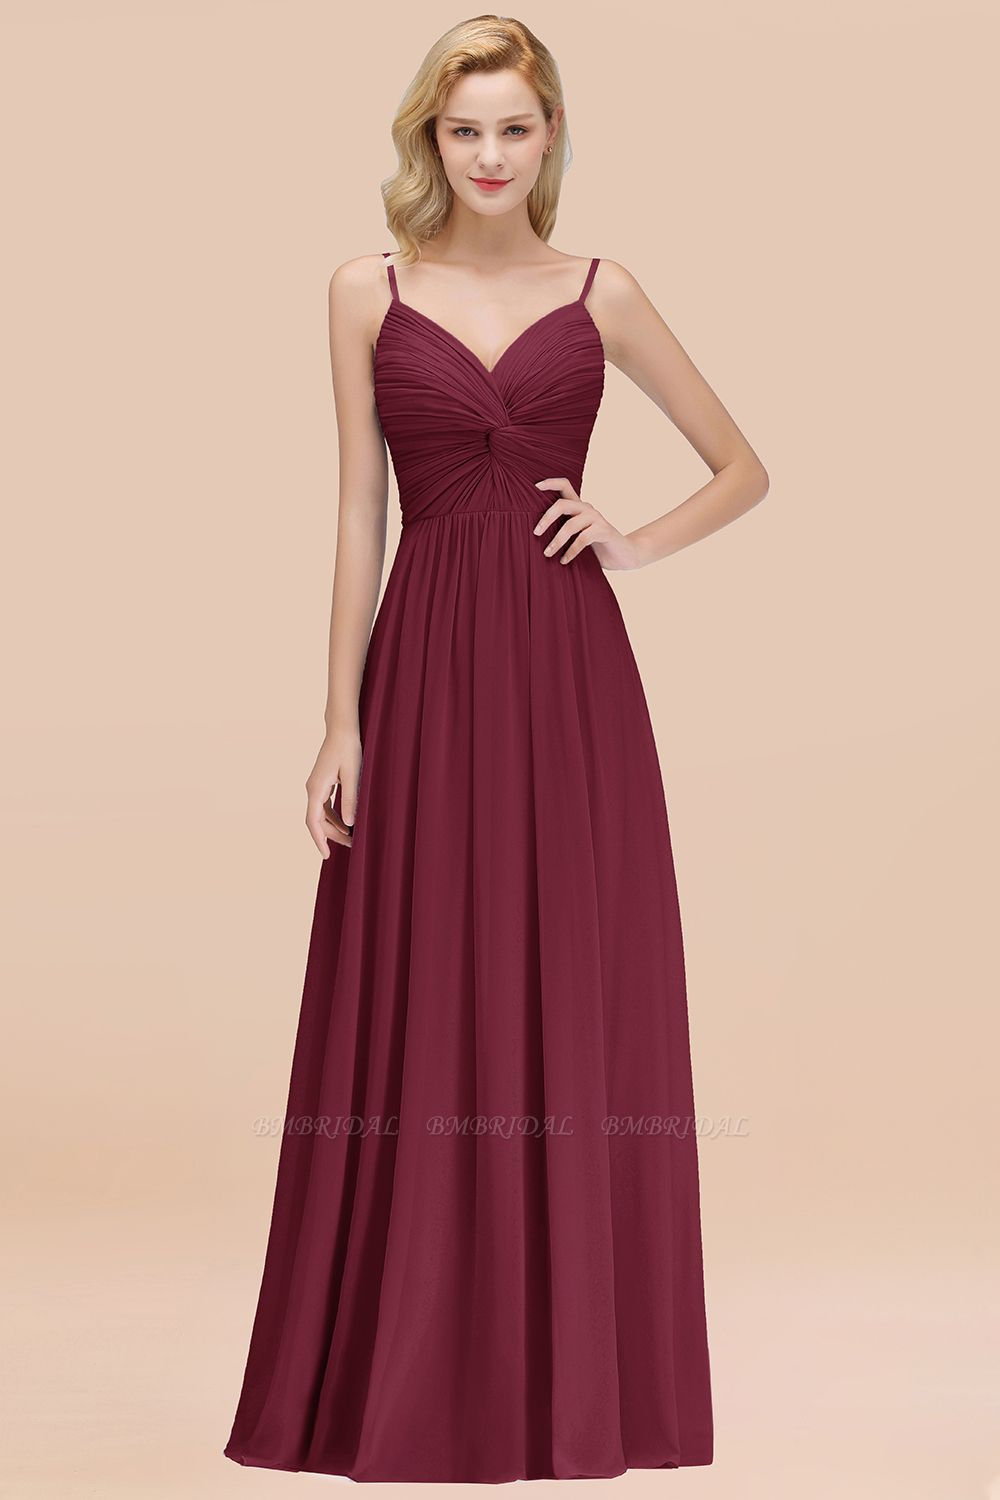 BMbridal Chic V-Neck Pleated Backless Bridesmaid Dresses with Spaghetti Straps